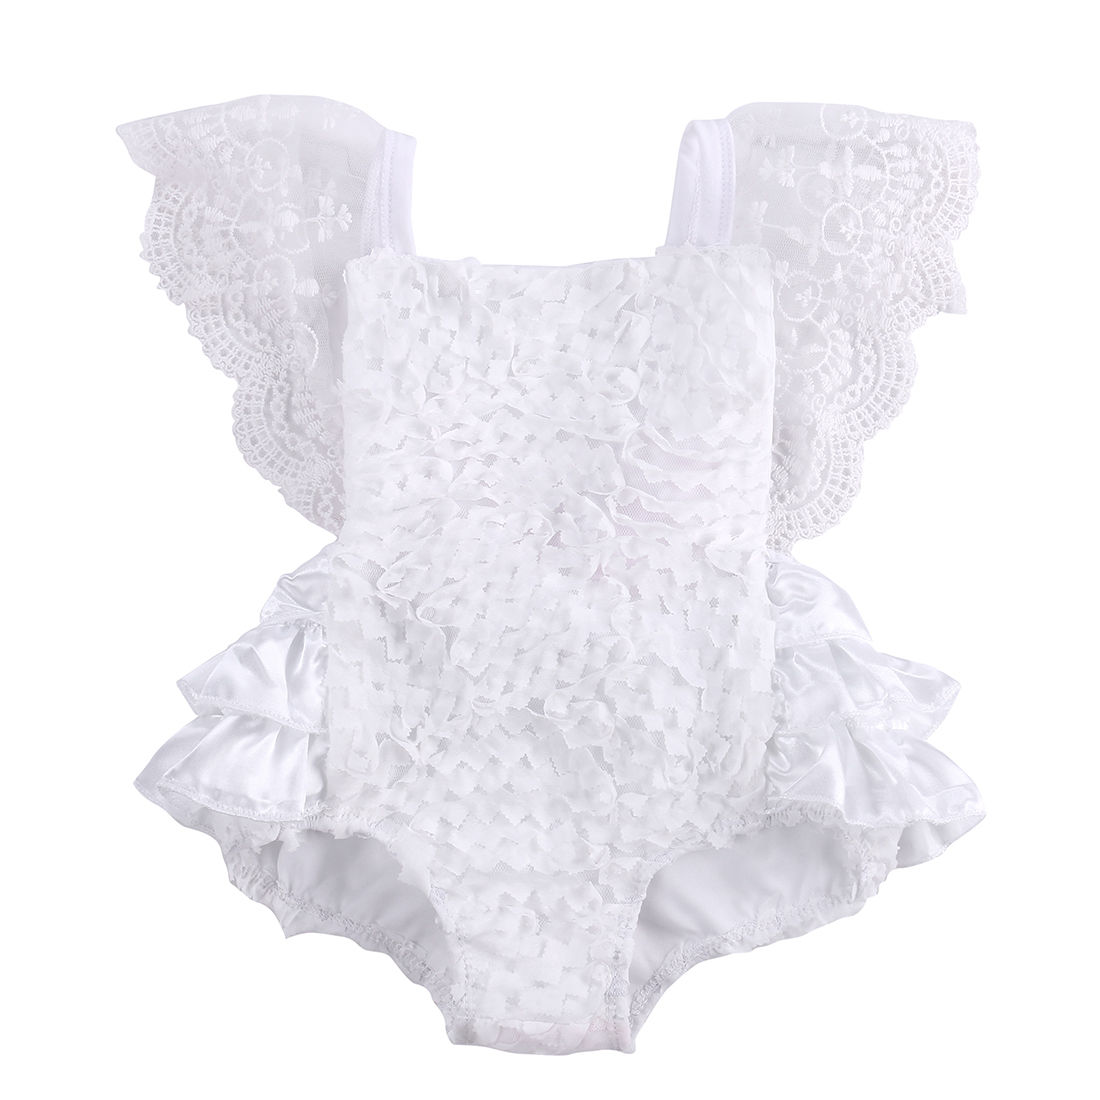 Tirred Cotton Bow Cute White Rompers Infant Baby Girl Clothes Lace Floral Ruffles Baby Girl Romper Cake Sunsuit Outfits 0-18M ветровка versace collection ветровка